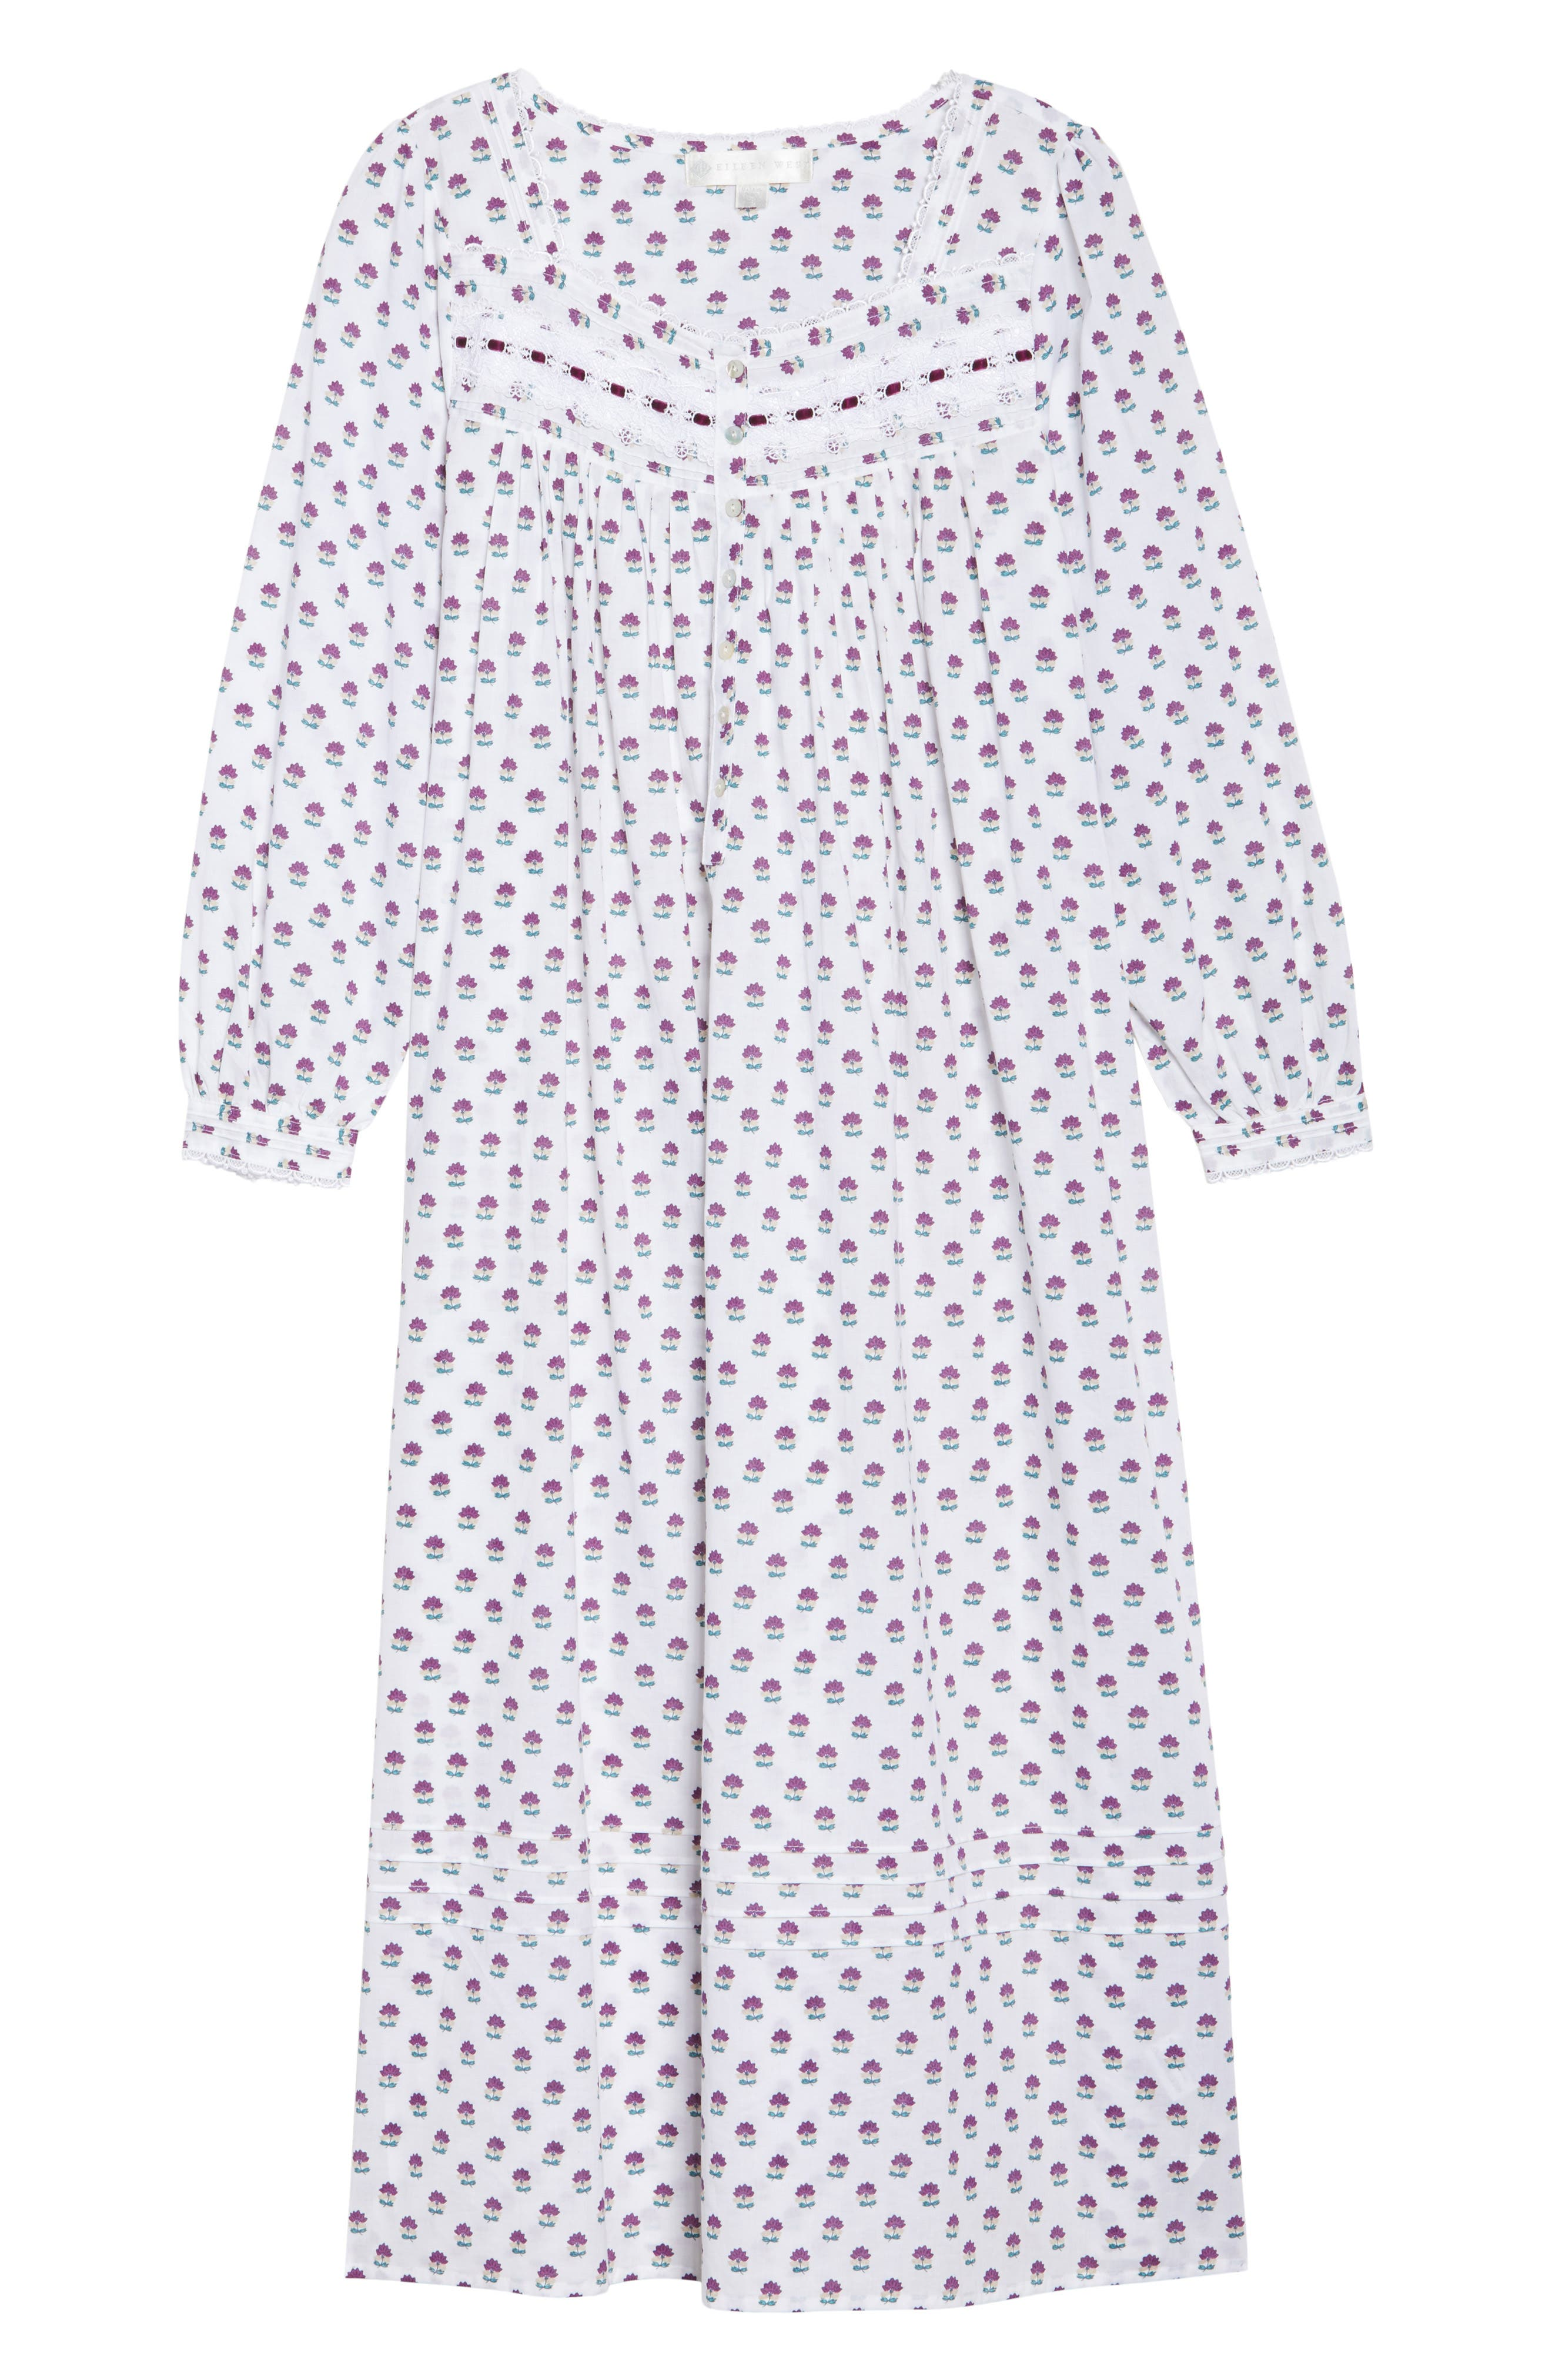 Ballet Flannel Nightgown,                             Alternate thumbnail 11, color,